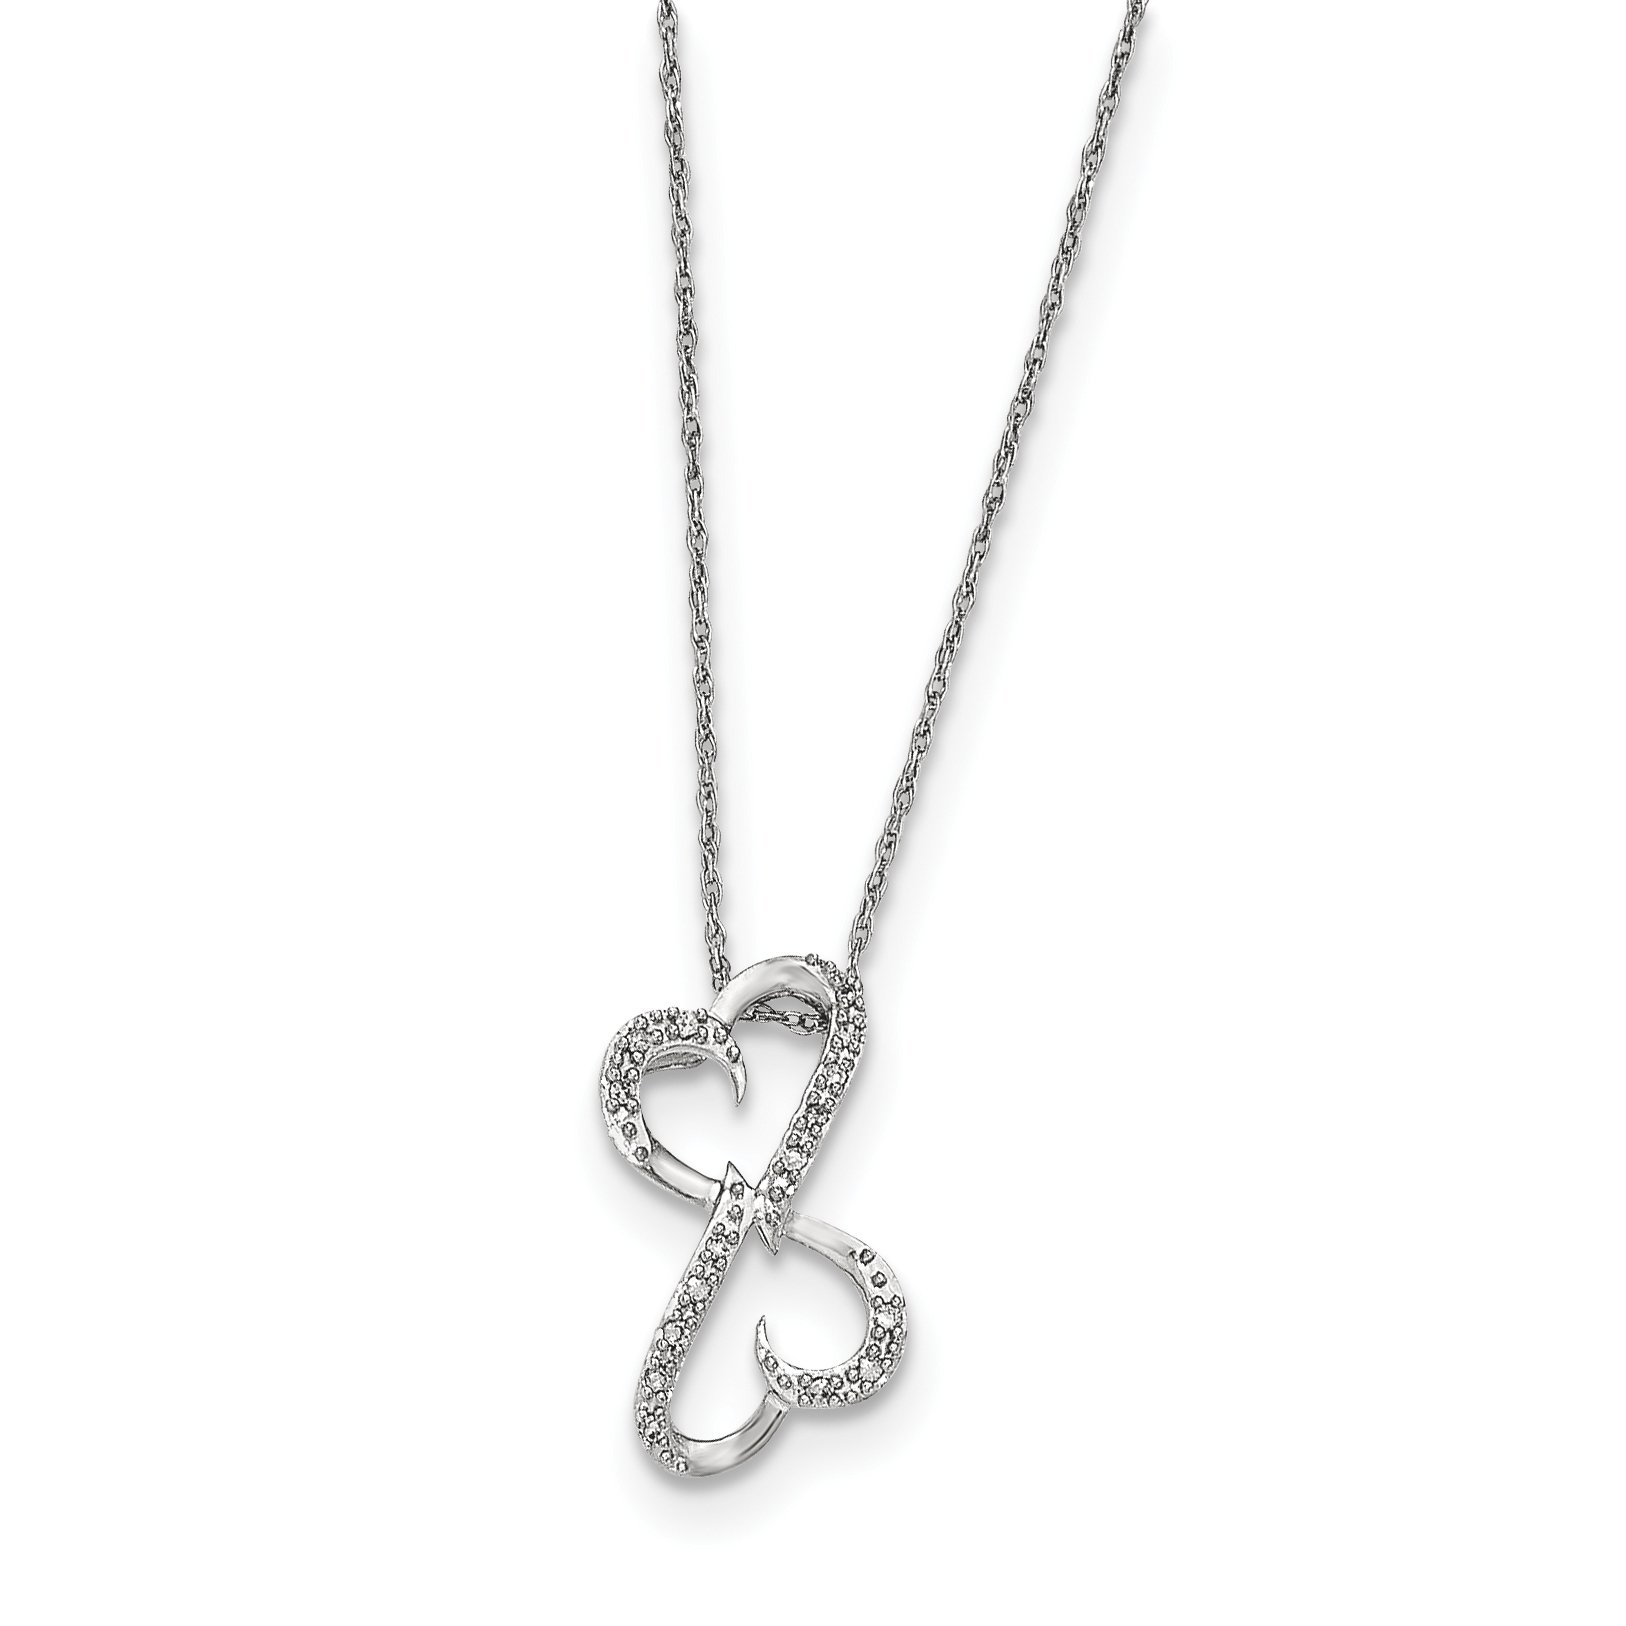 ICE CARATS 14k White Gold Diamond Heart Chain Necklace Fine Jewelry Gift Set For Women Heart